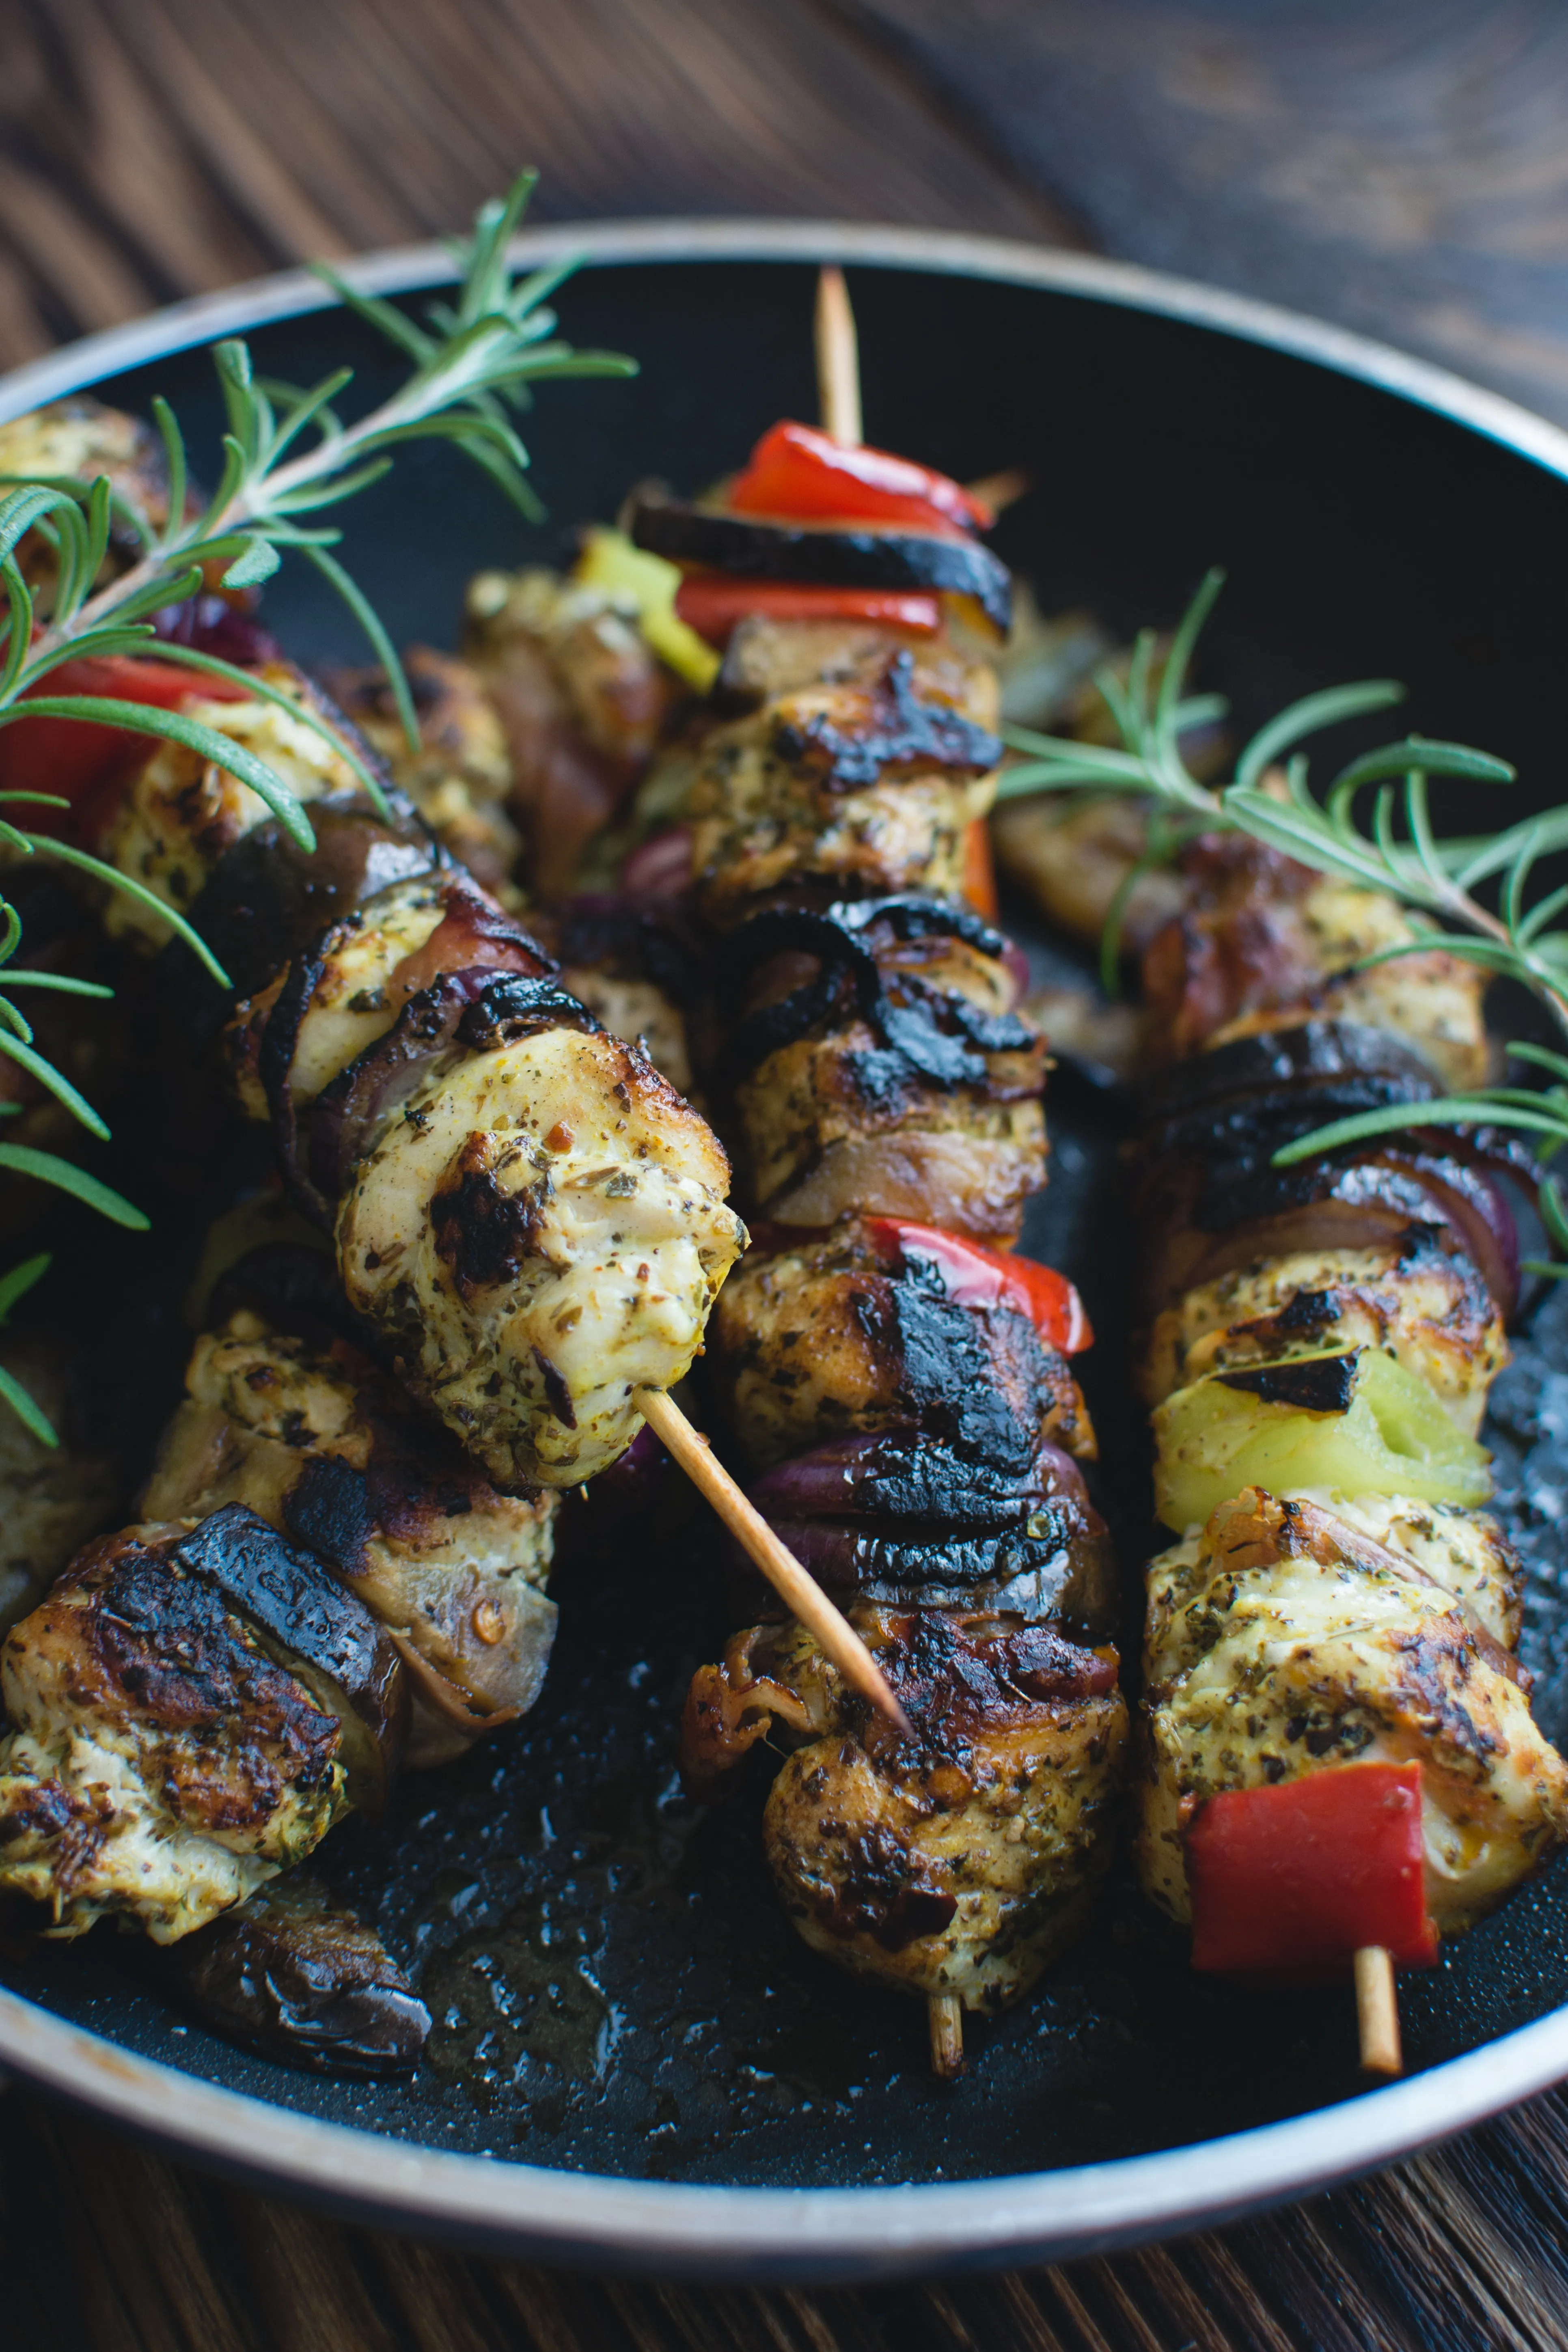 Chicken skewers on a wooden background